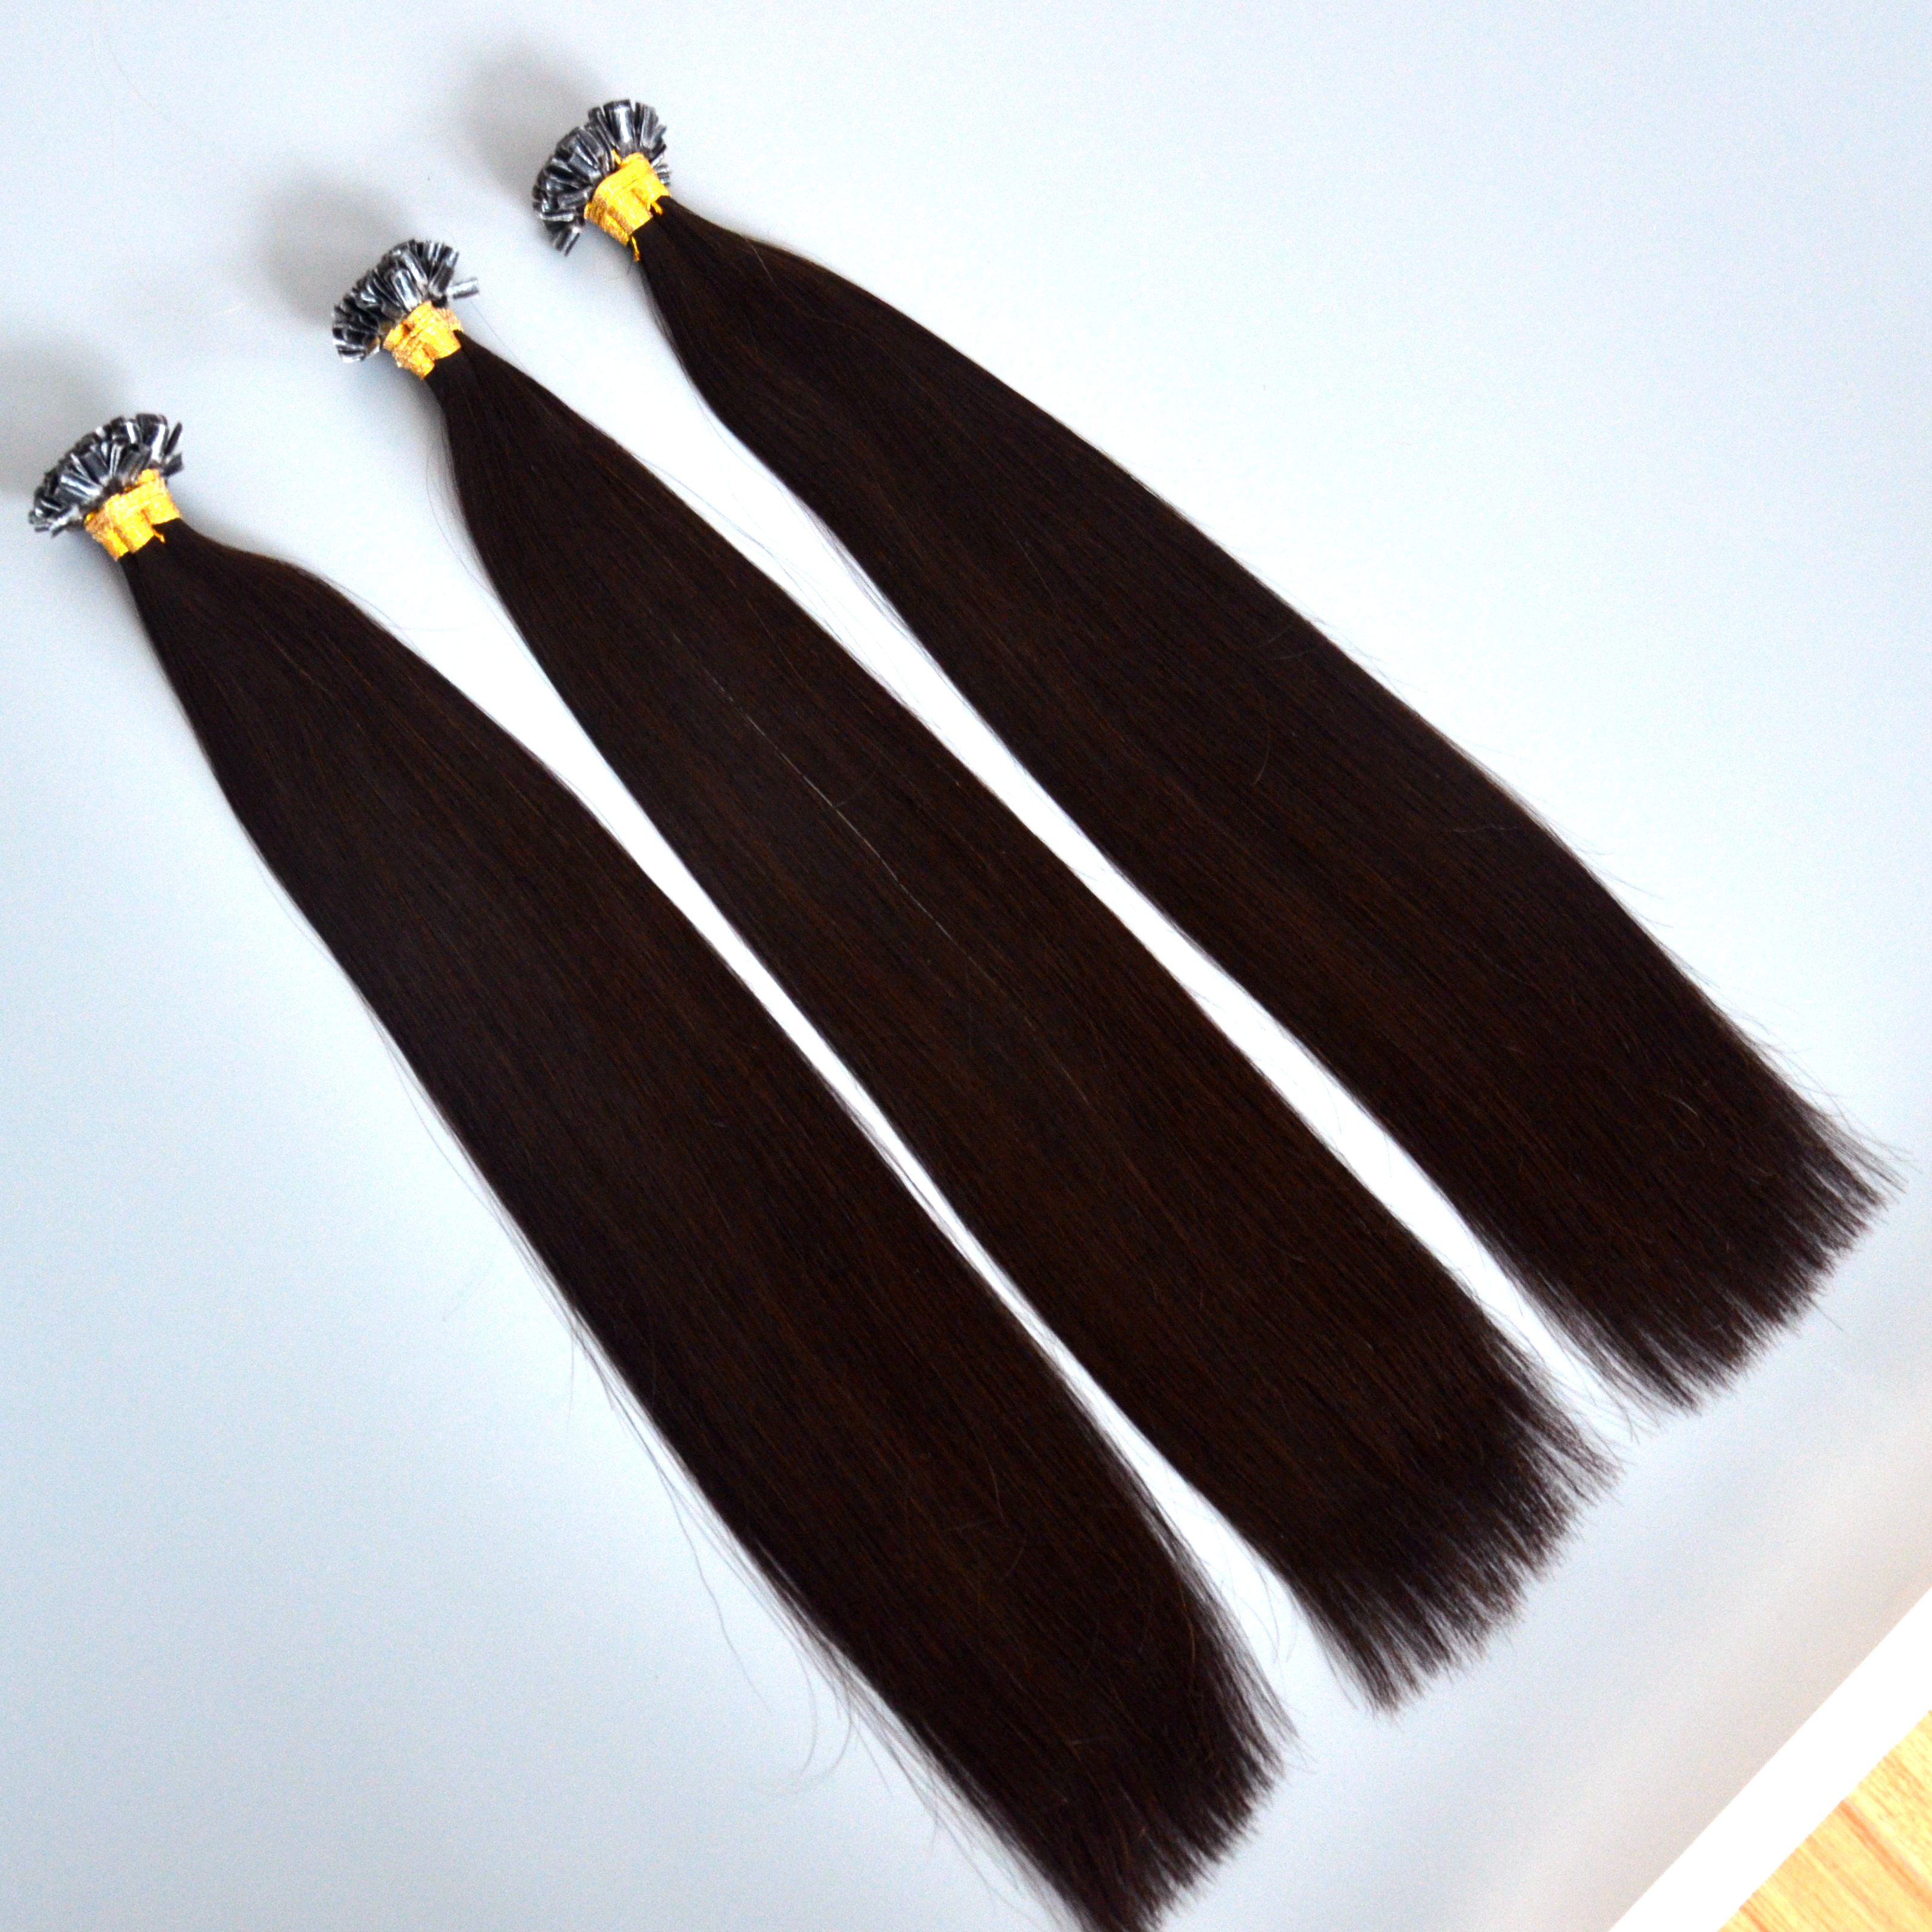 30 inch u tip keratin bond hair extension,hair extensions u-tip,unprocessed raw hair extension HN 370